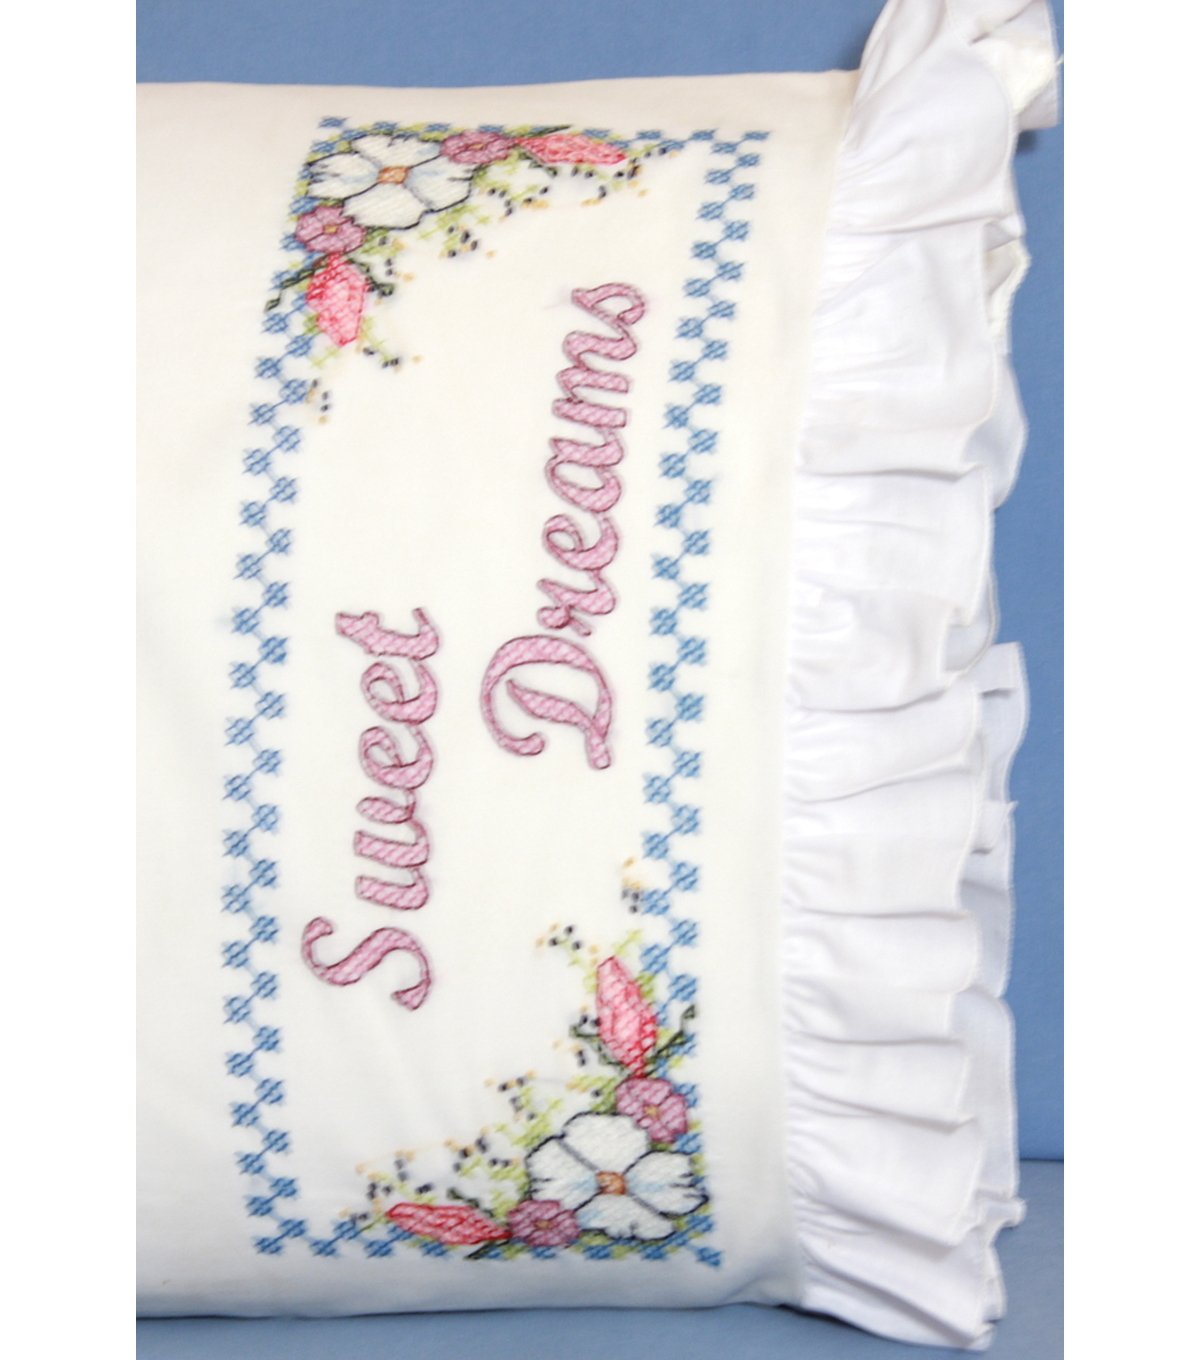 Fairway Stamped Lace Edge Pillowcase Sweet Dreams